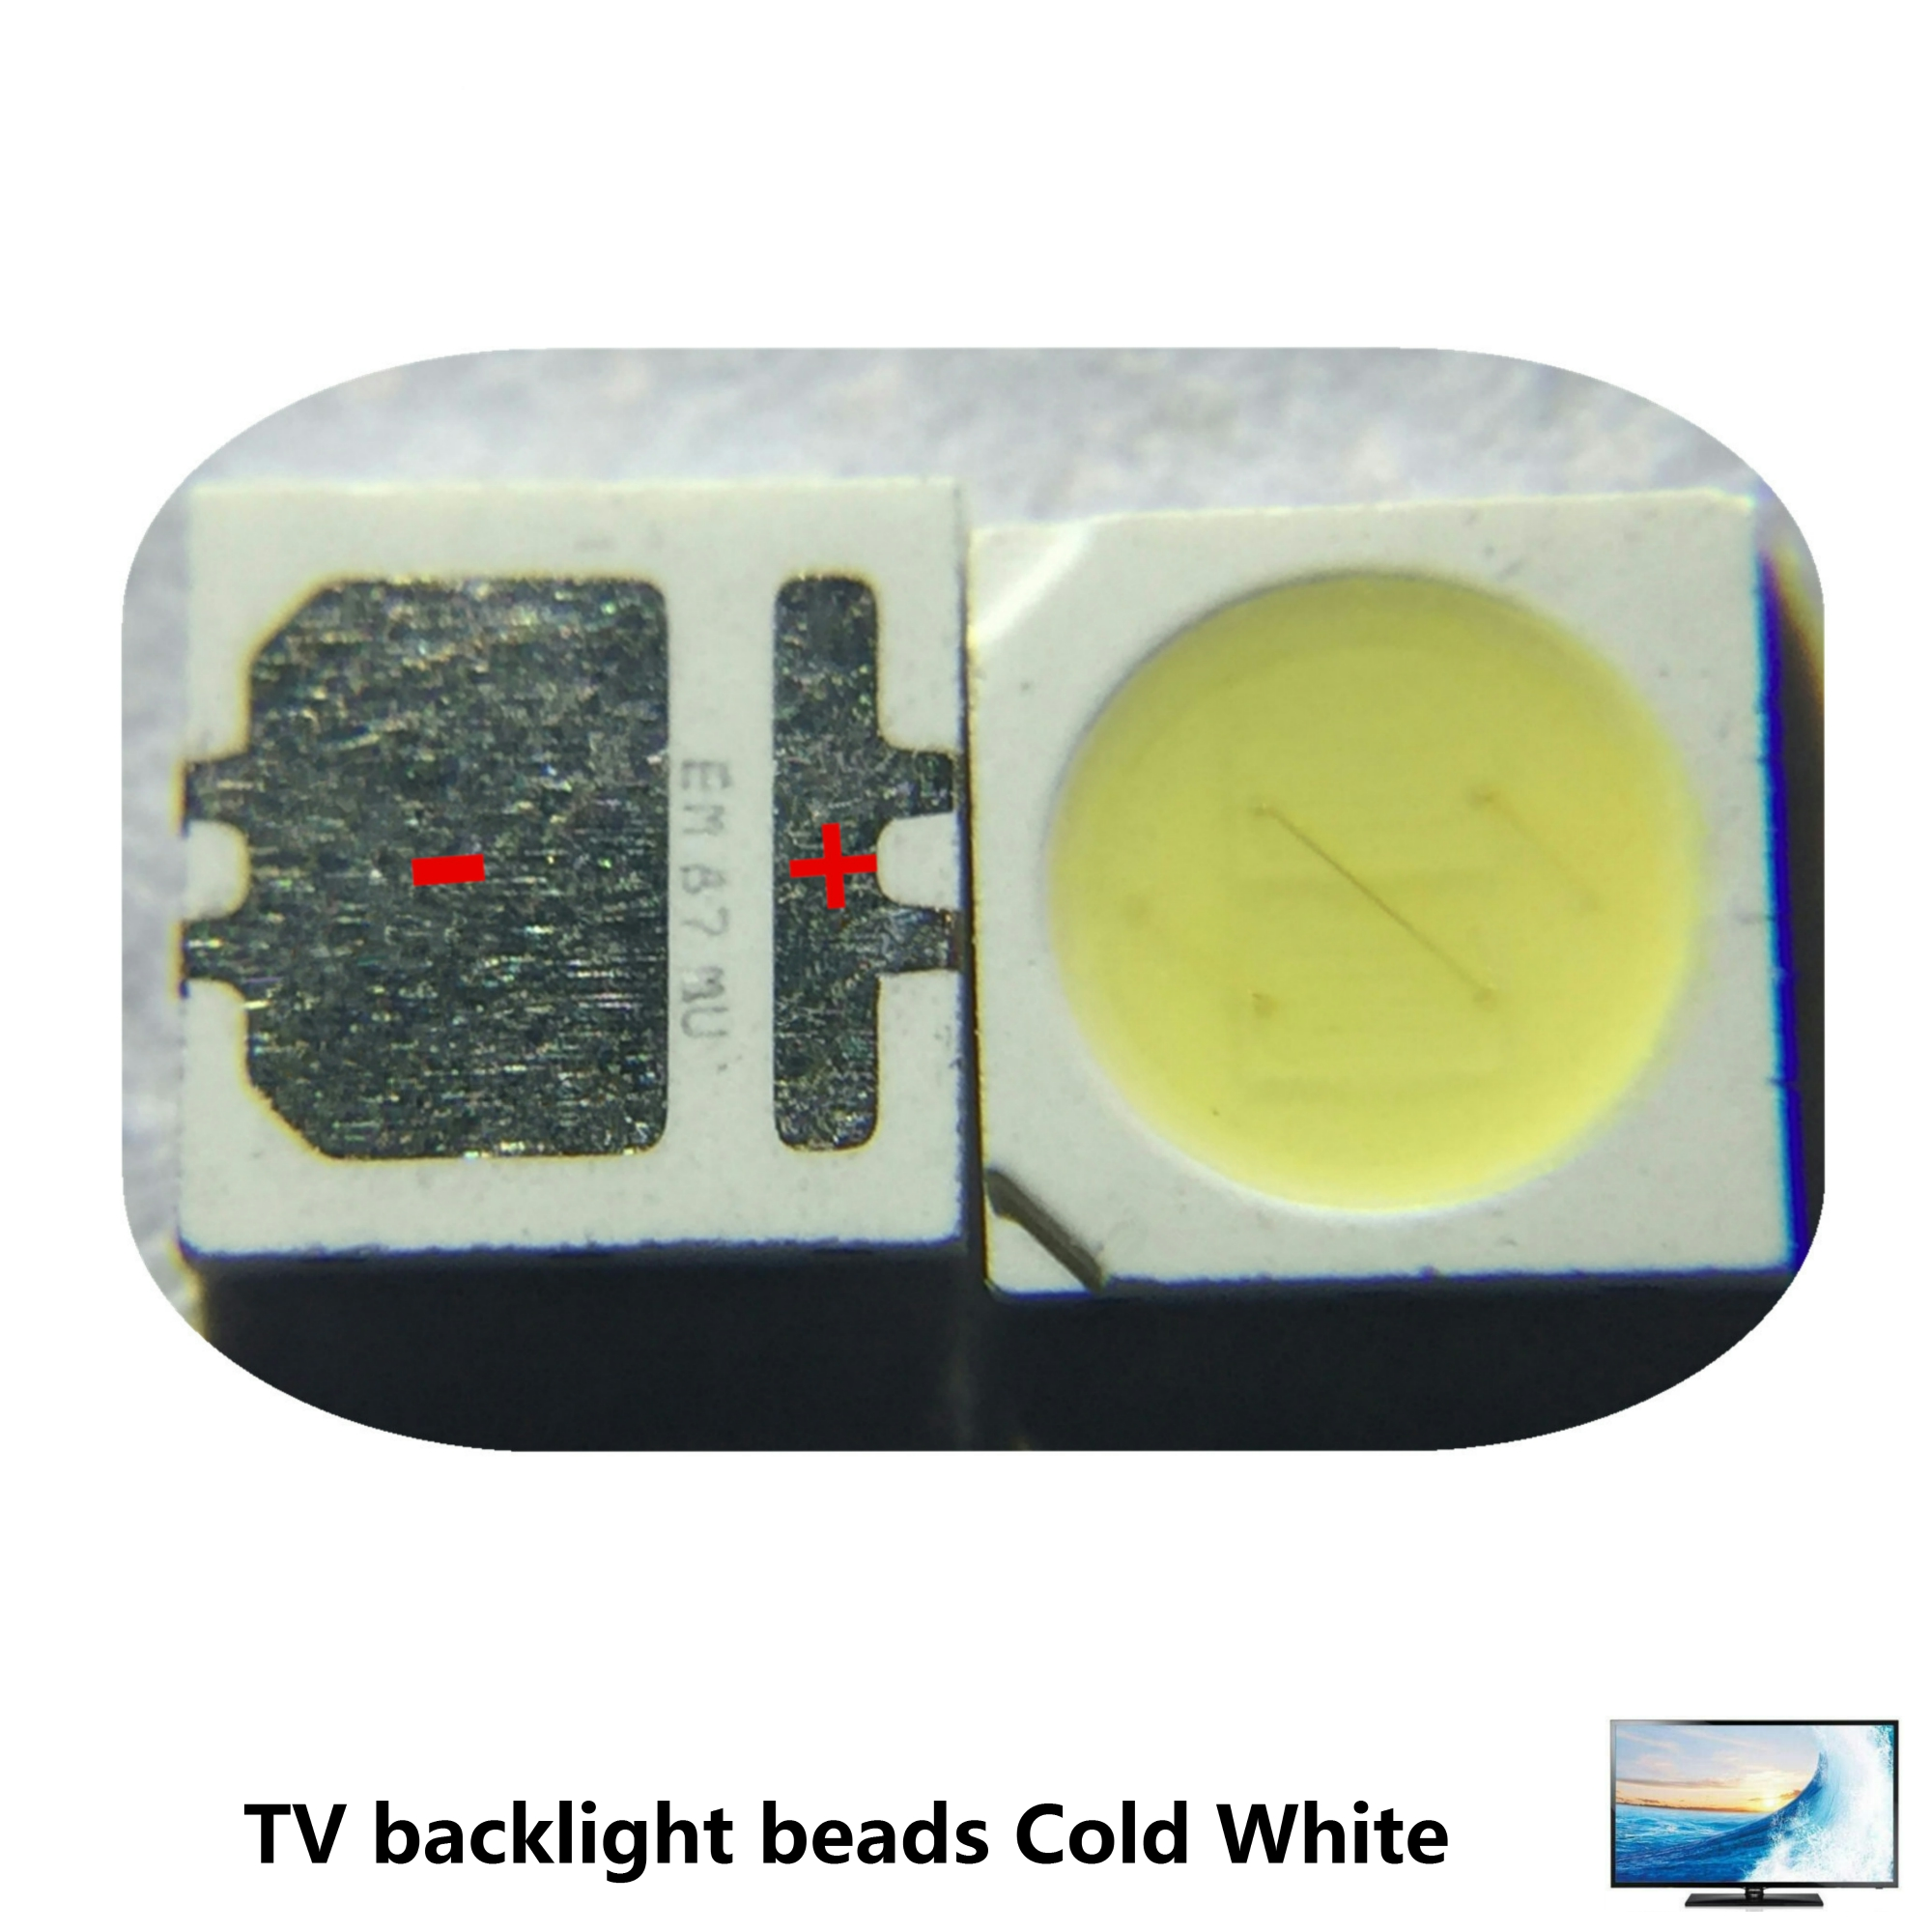 500pcs SEOUL High Power LED LED Backlight 2W 3535 6V Cool White 135LM TV Application SBWVL2S0E New And Original